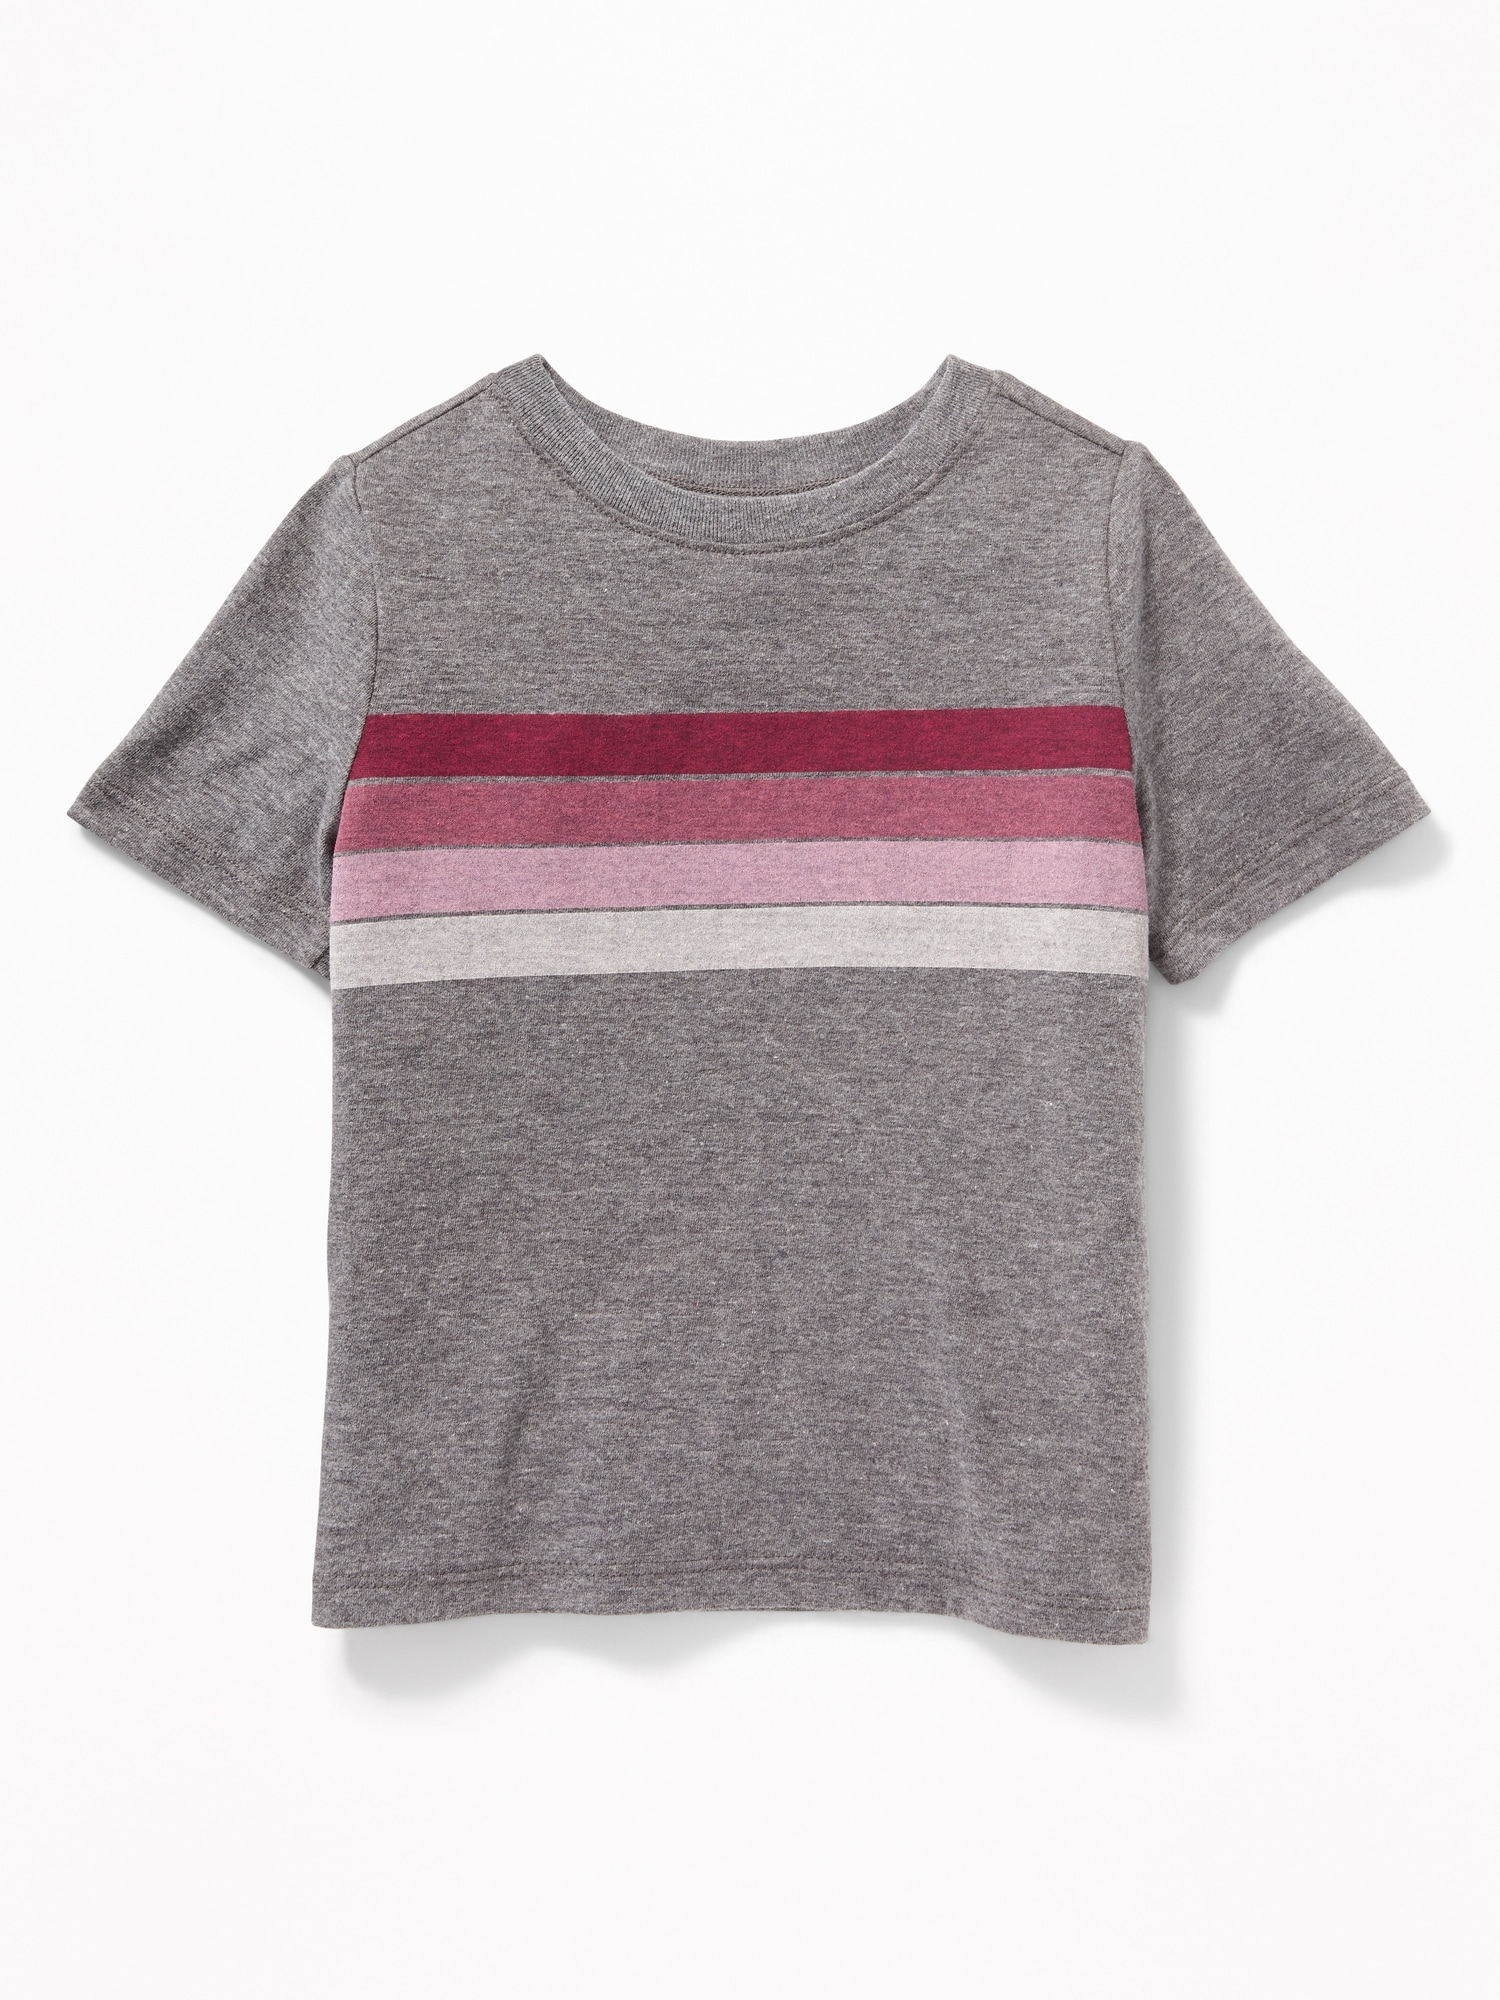 b2d2a45c9 Chest-Stripe Crew-Neck Tee for Toddler Boys | Old Navy